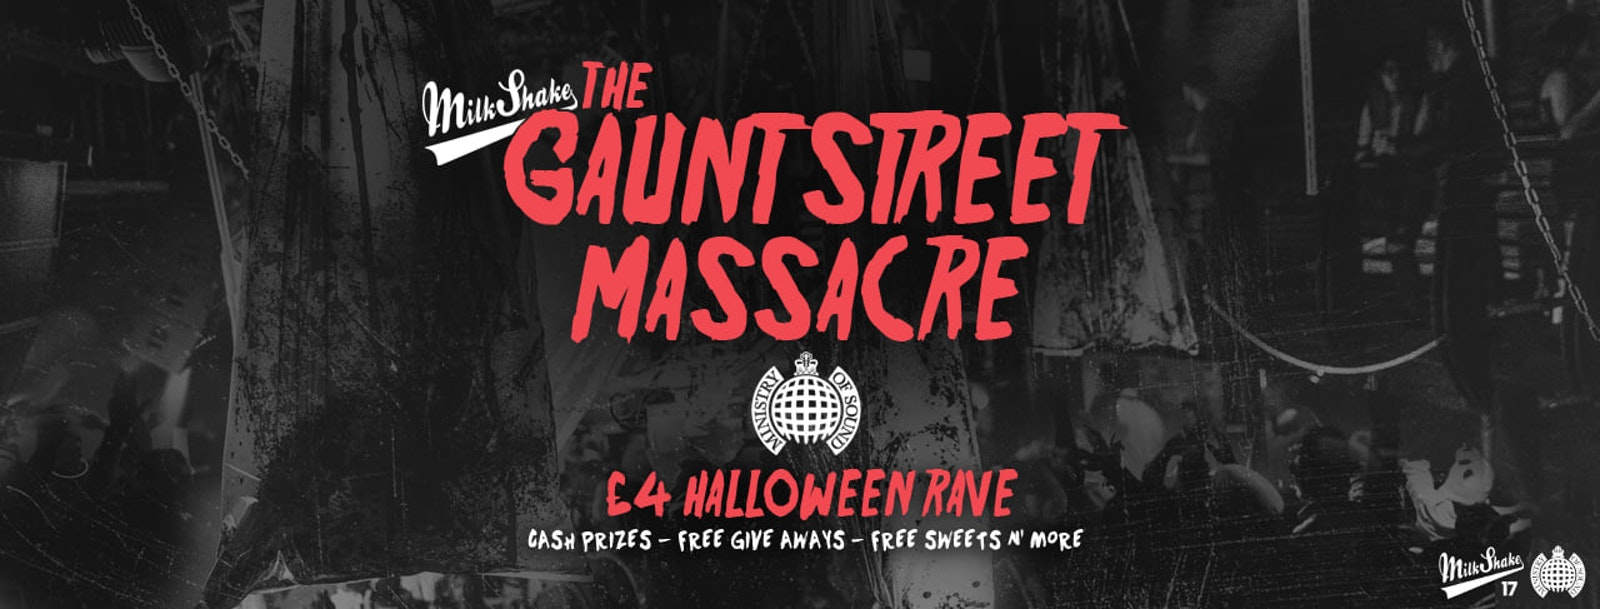 ​The Gaunt Street Massacre 2019 | £4 Ministry of Sound Halloween Rave